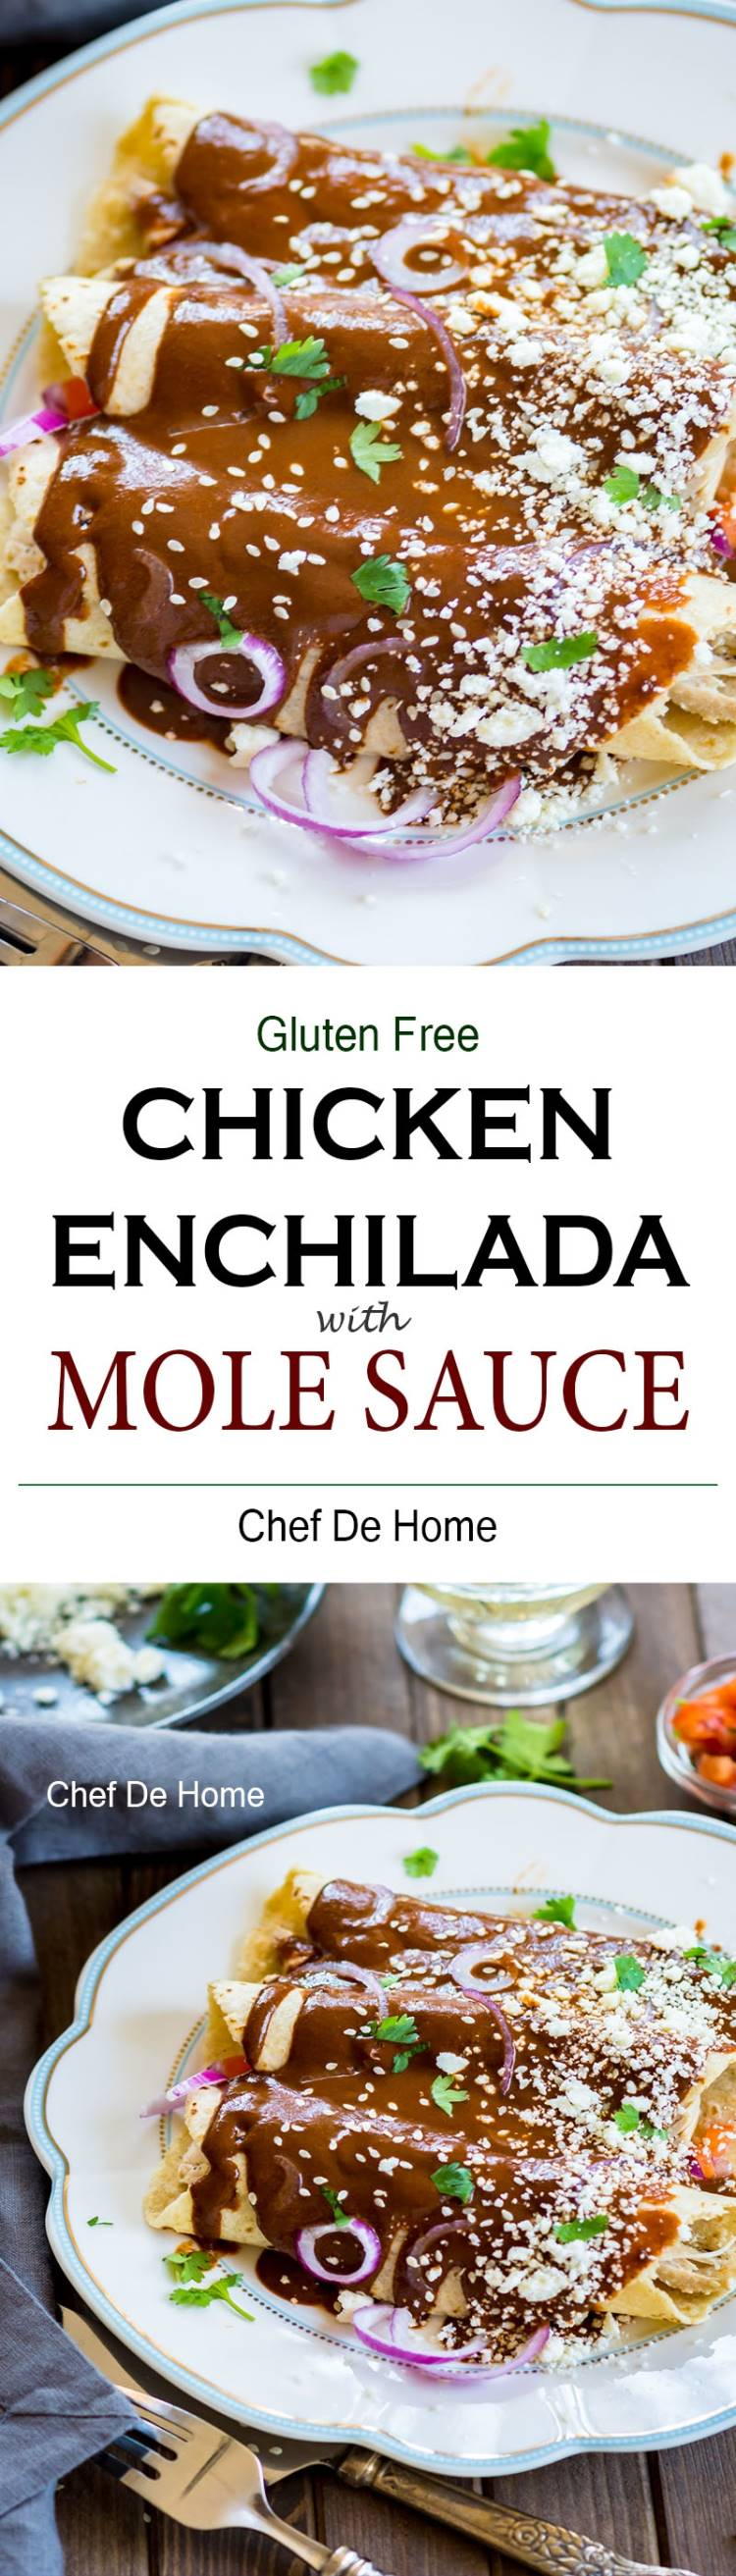 Easy homemade an flavorful Mexican Mole Sauce made from scratch in just 30 minutes and served over chicken enchiladas | chefdehome.com